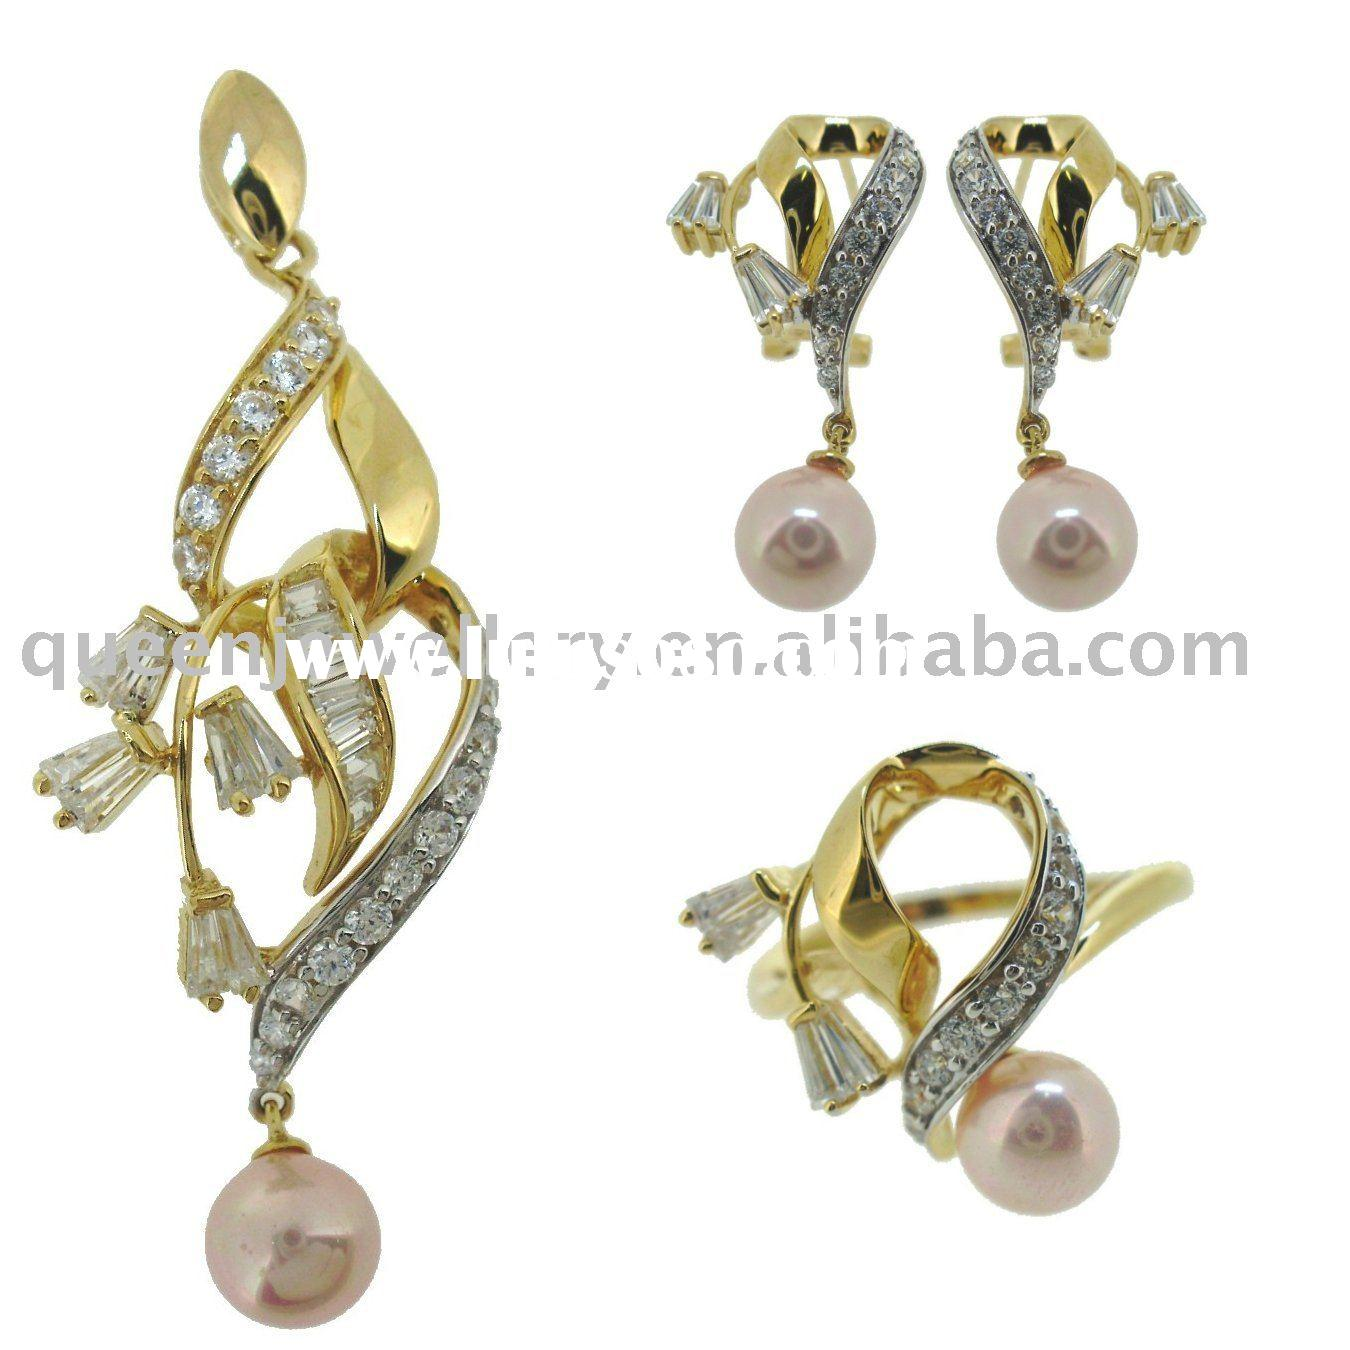 18k gold jewelry set with white cz and pearl